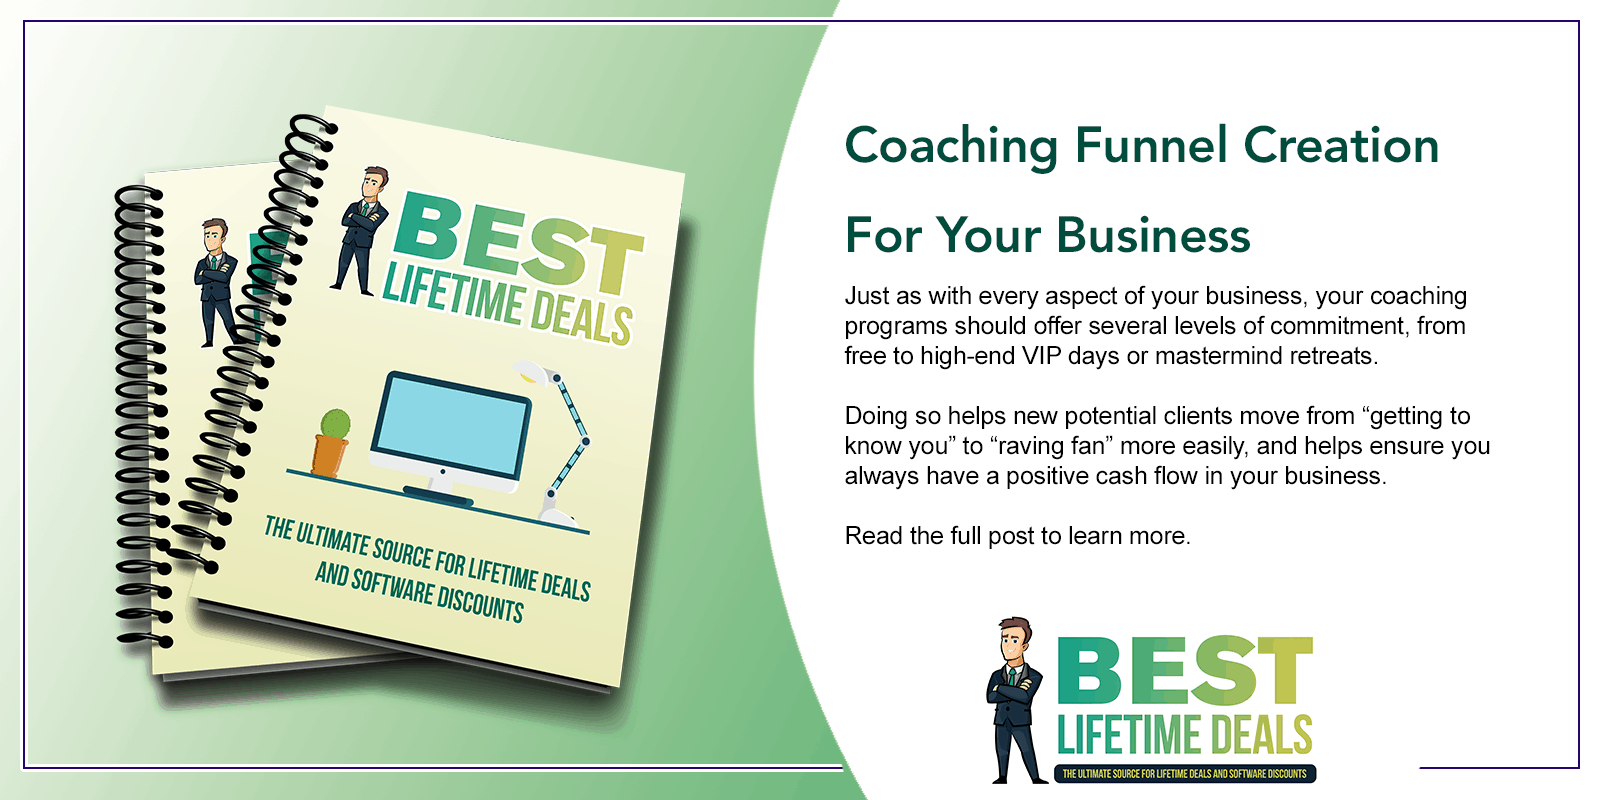 Coaching Funnel Creation For Your Business Featured Image